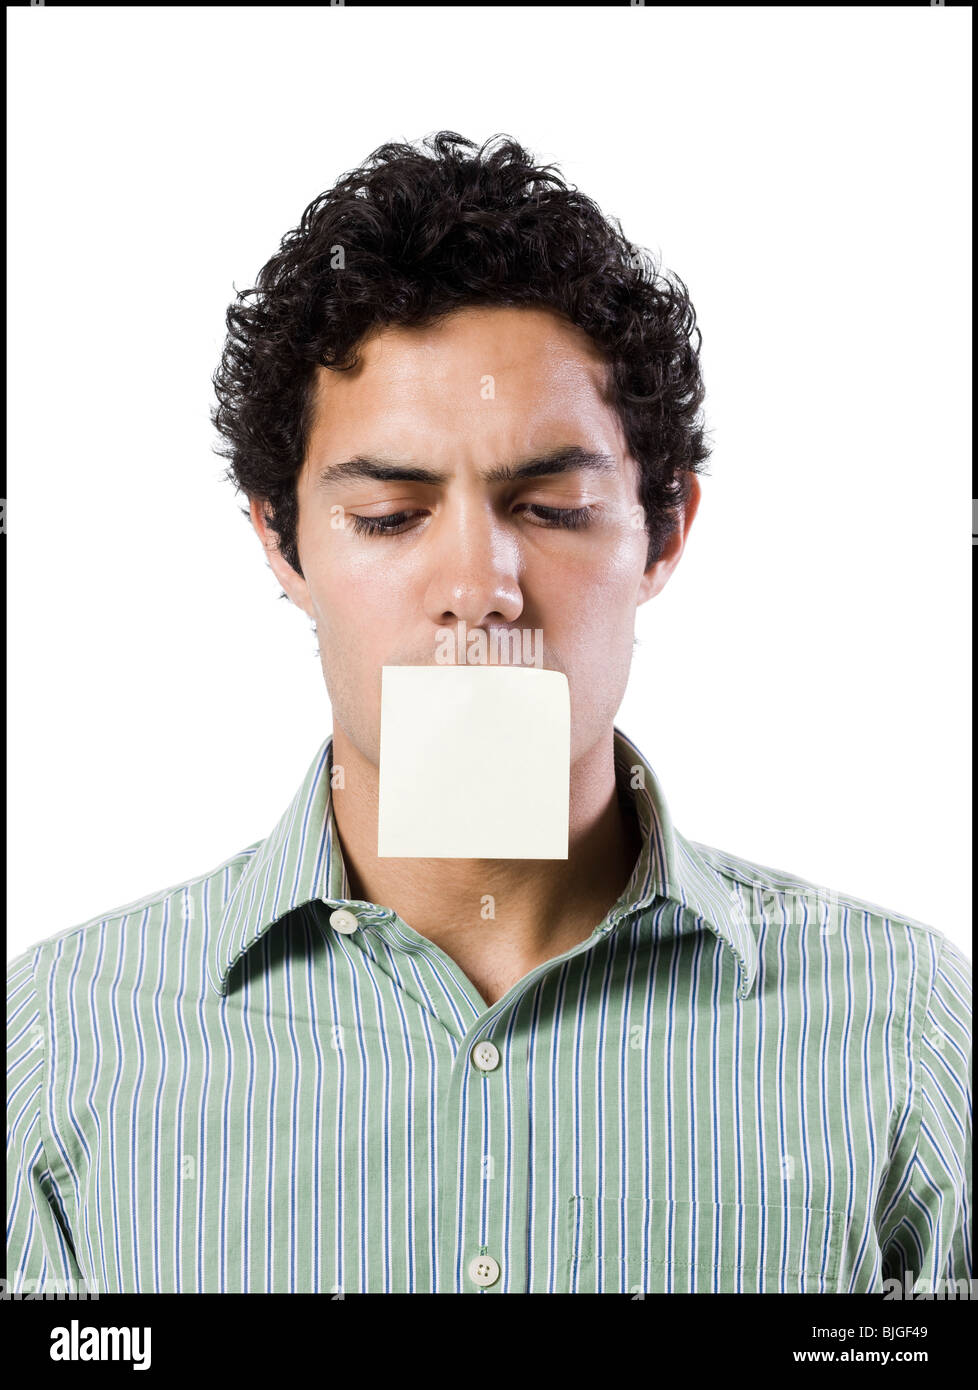 man with a post it note over his mouth - Stock Image